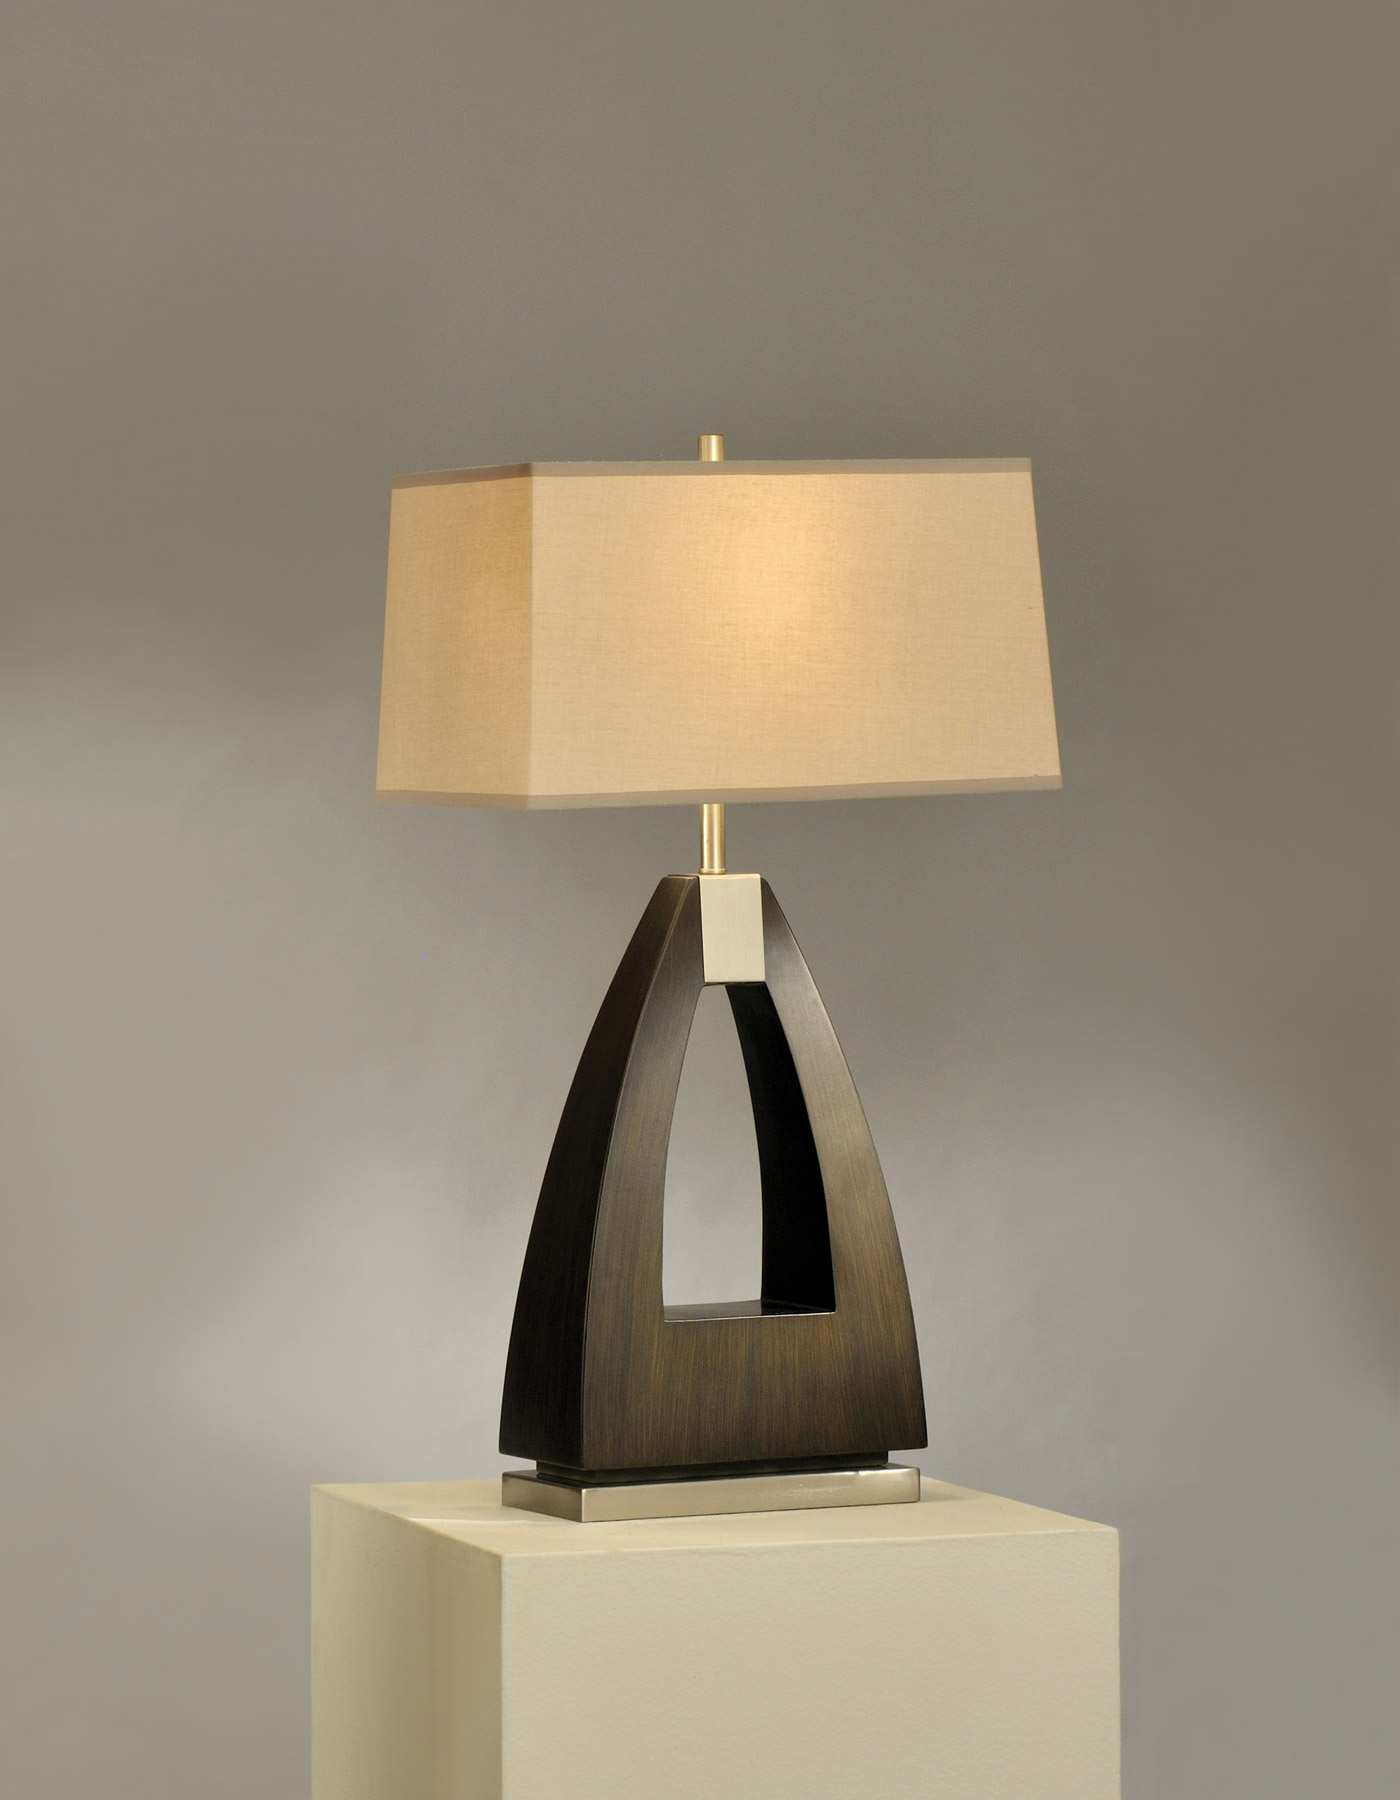 Nova Lighting 10392 Trina Table Lamp